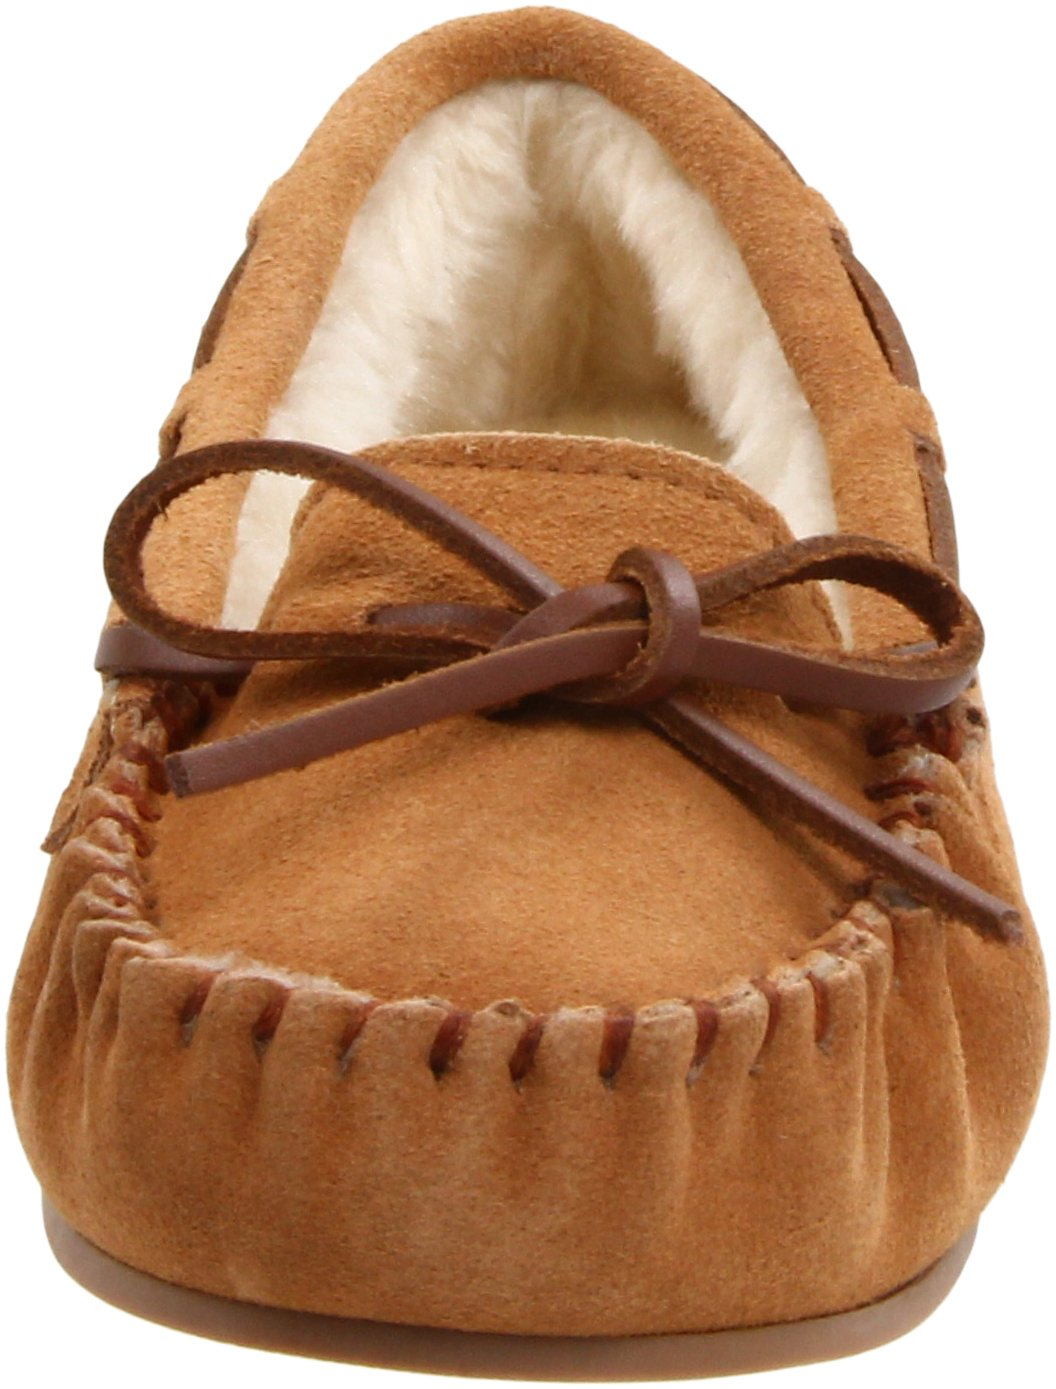 Tamarac by Slippers International Women's Molly Slipper